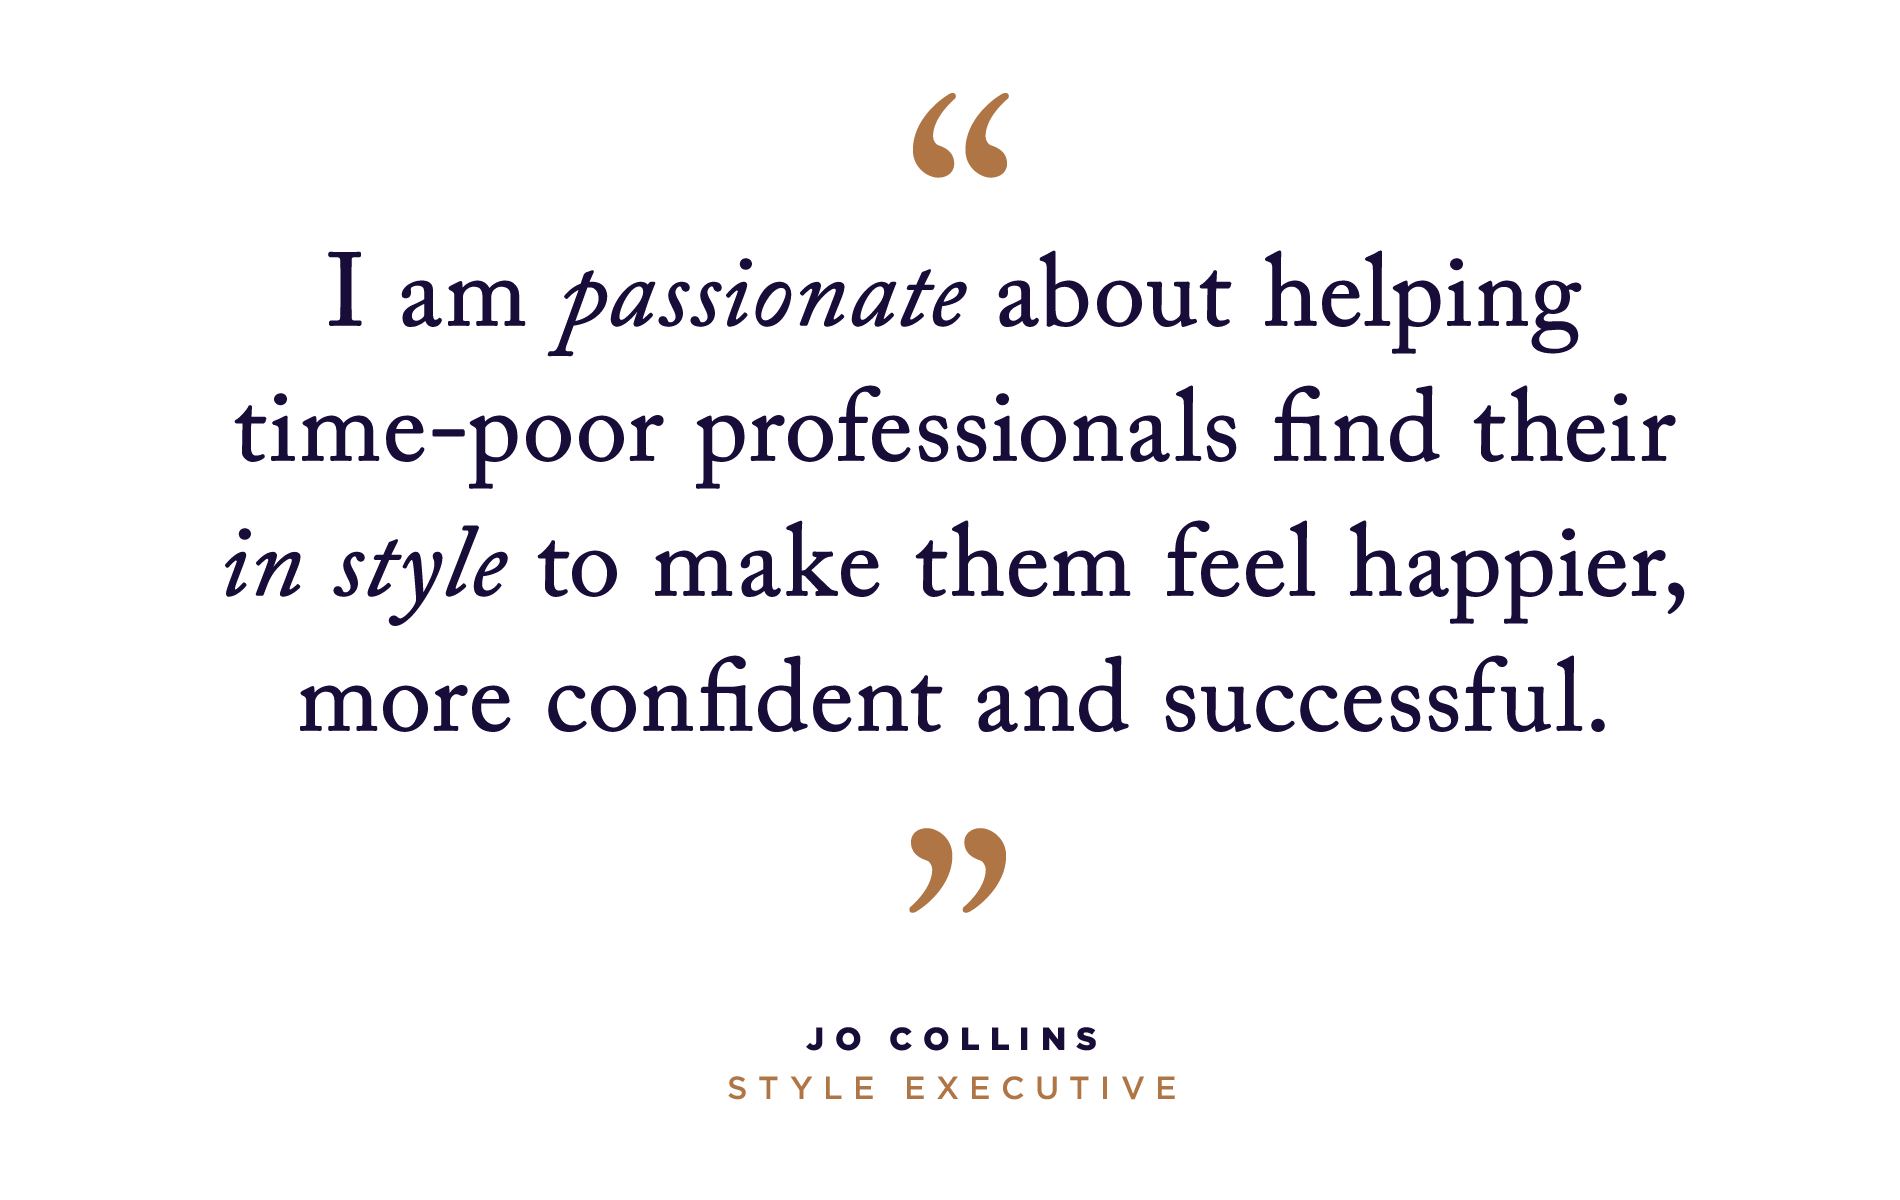 jocollins_type-quote-banner-passionate.png